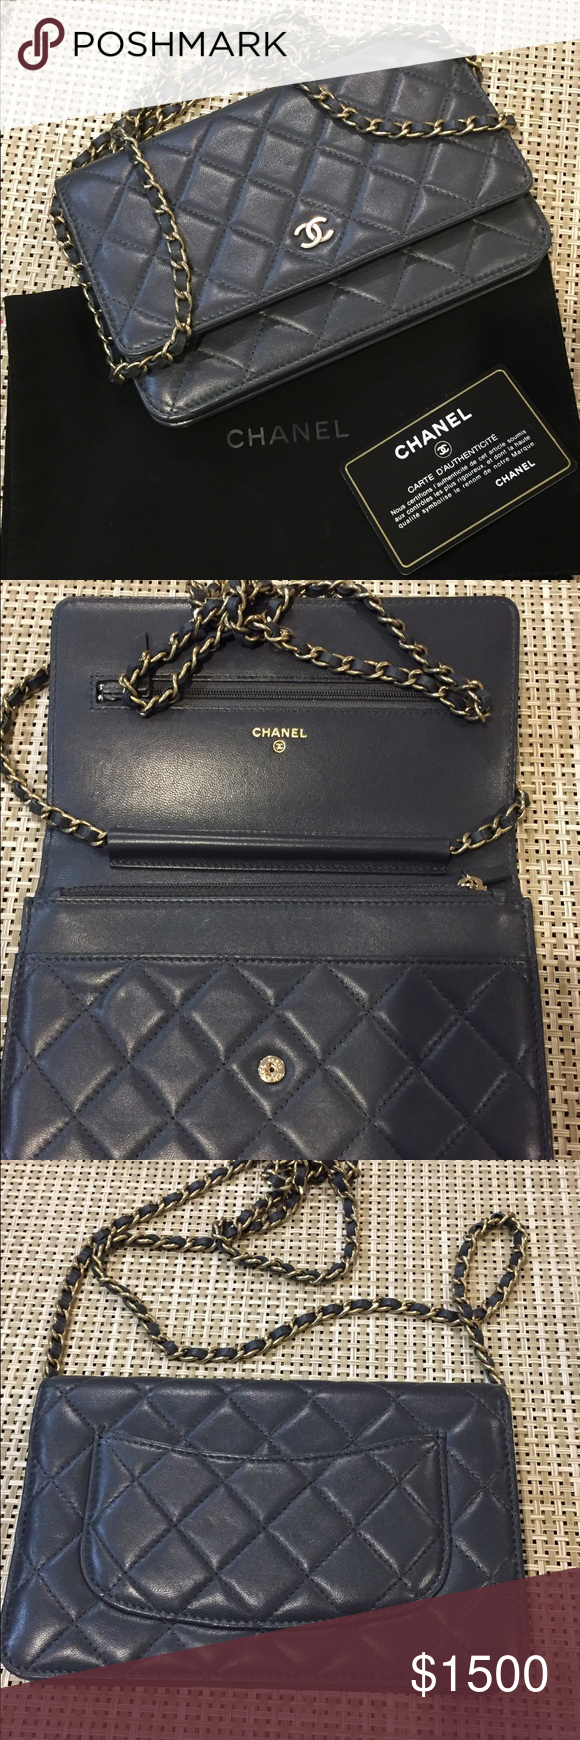 Chanel Chain Grey w/ Light Gold Hardware CrossBody Authentic Chanel Wallet on Chain Grey with Light gold Hardware CrossBody  Serial# 20XXXXXX Year Manufactured between 2014 to 2015 This gorgeous bag is in very good condition , very minor signs of wear  Comes with the original dust bag and Authenticity card No box  Don't miss the opportunity to add this bag at your collection  Serious Buyers  Good luck!!!! CHANEL Bags Crossbody Bags